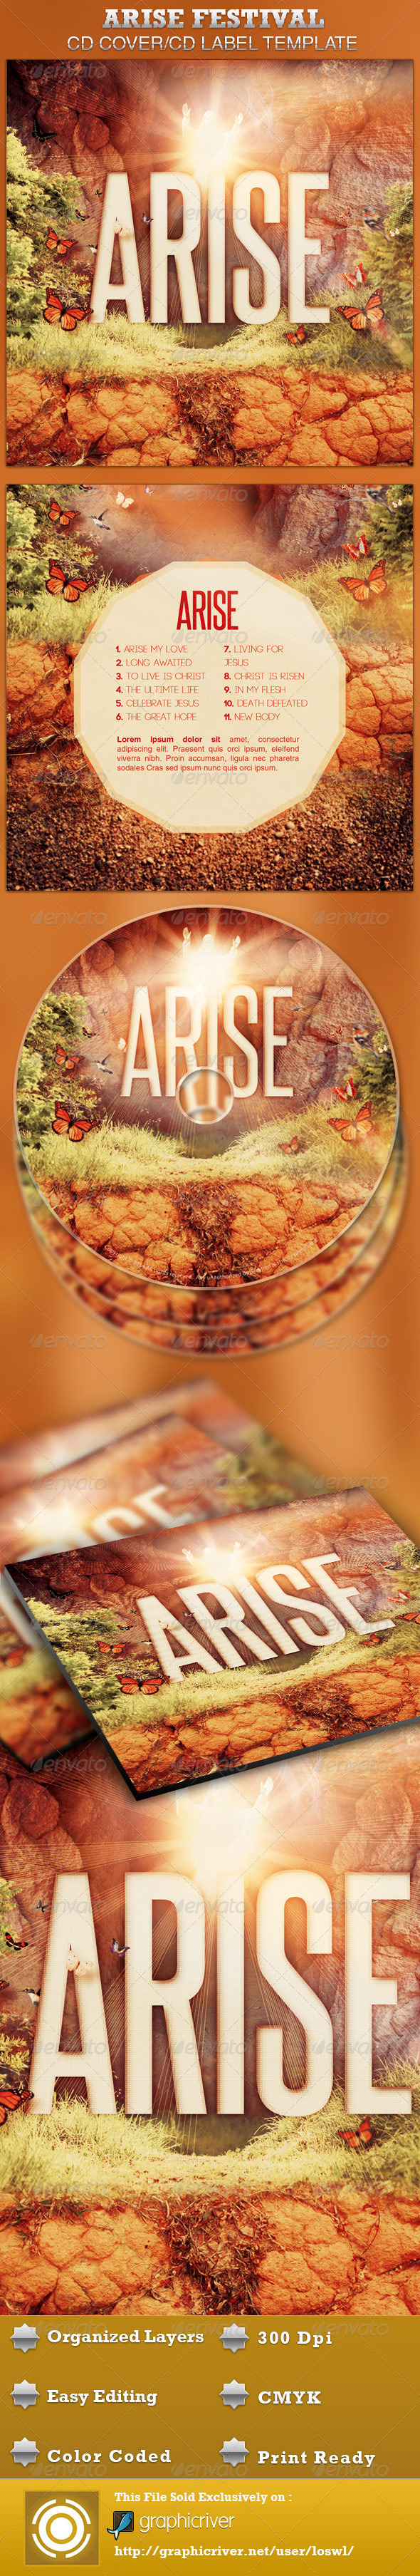 GraphicRiver Arise CD Artwork Template 4332829